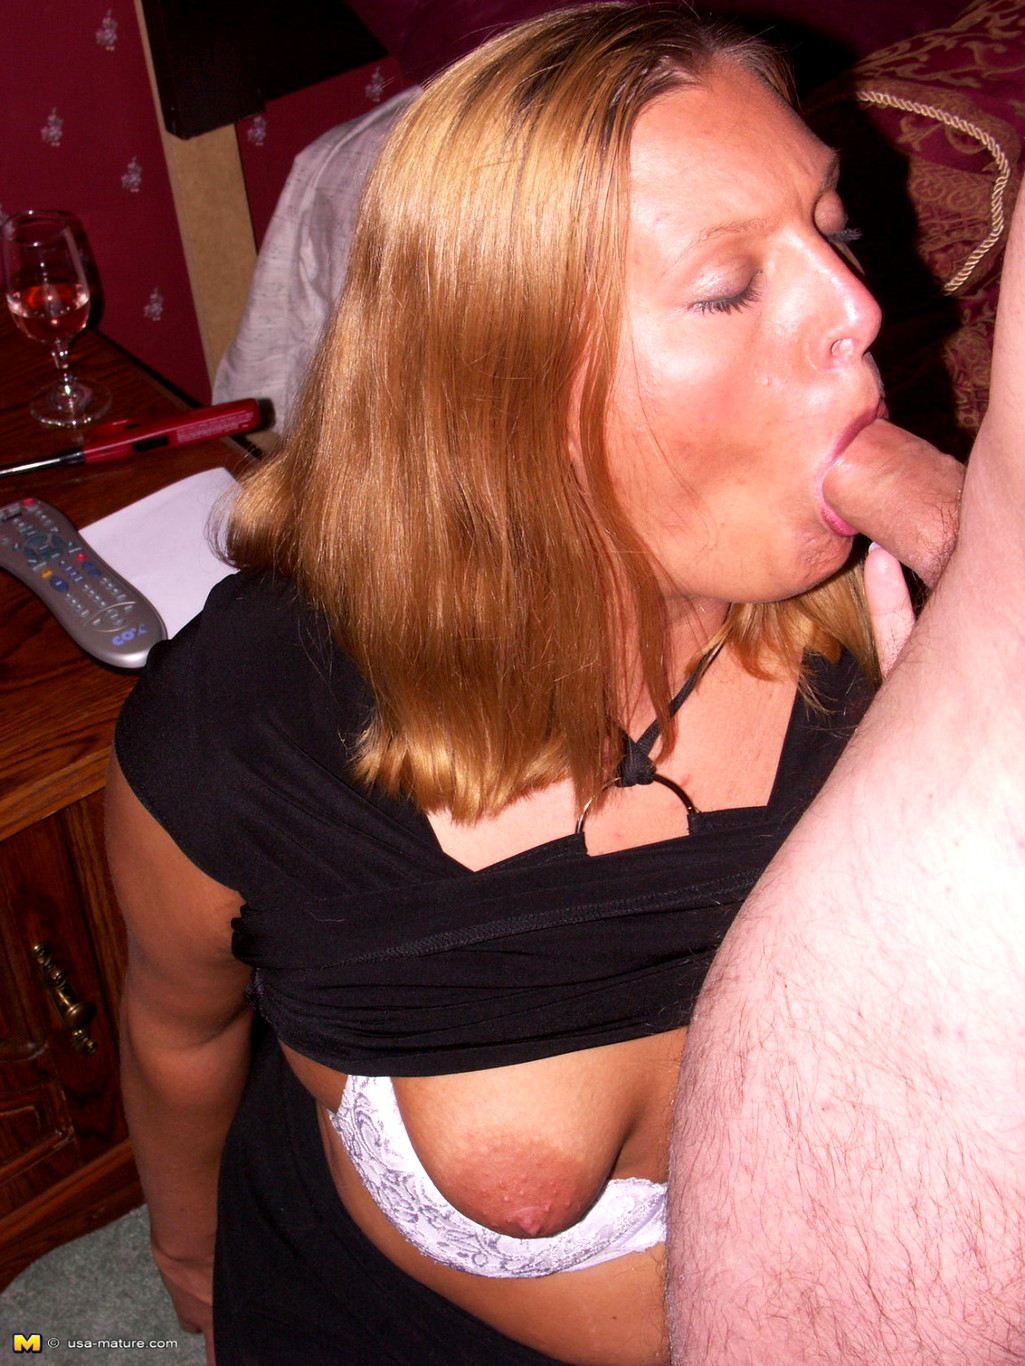 Housewifes blowjobs 6